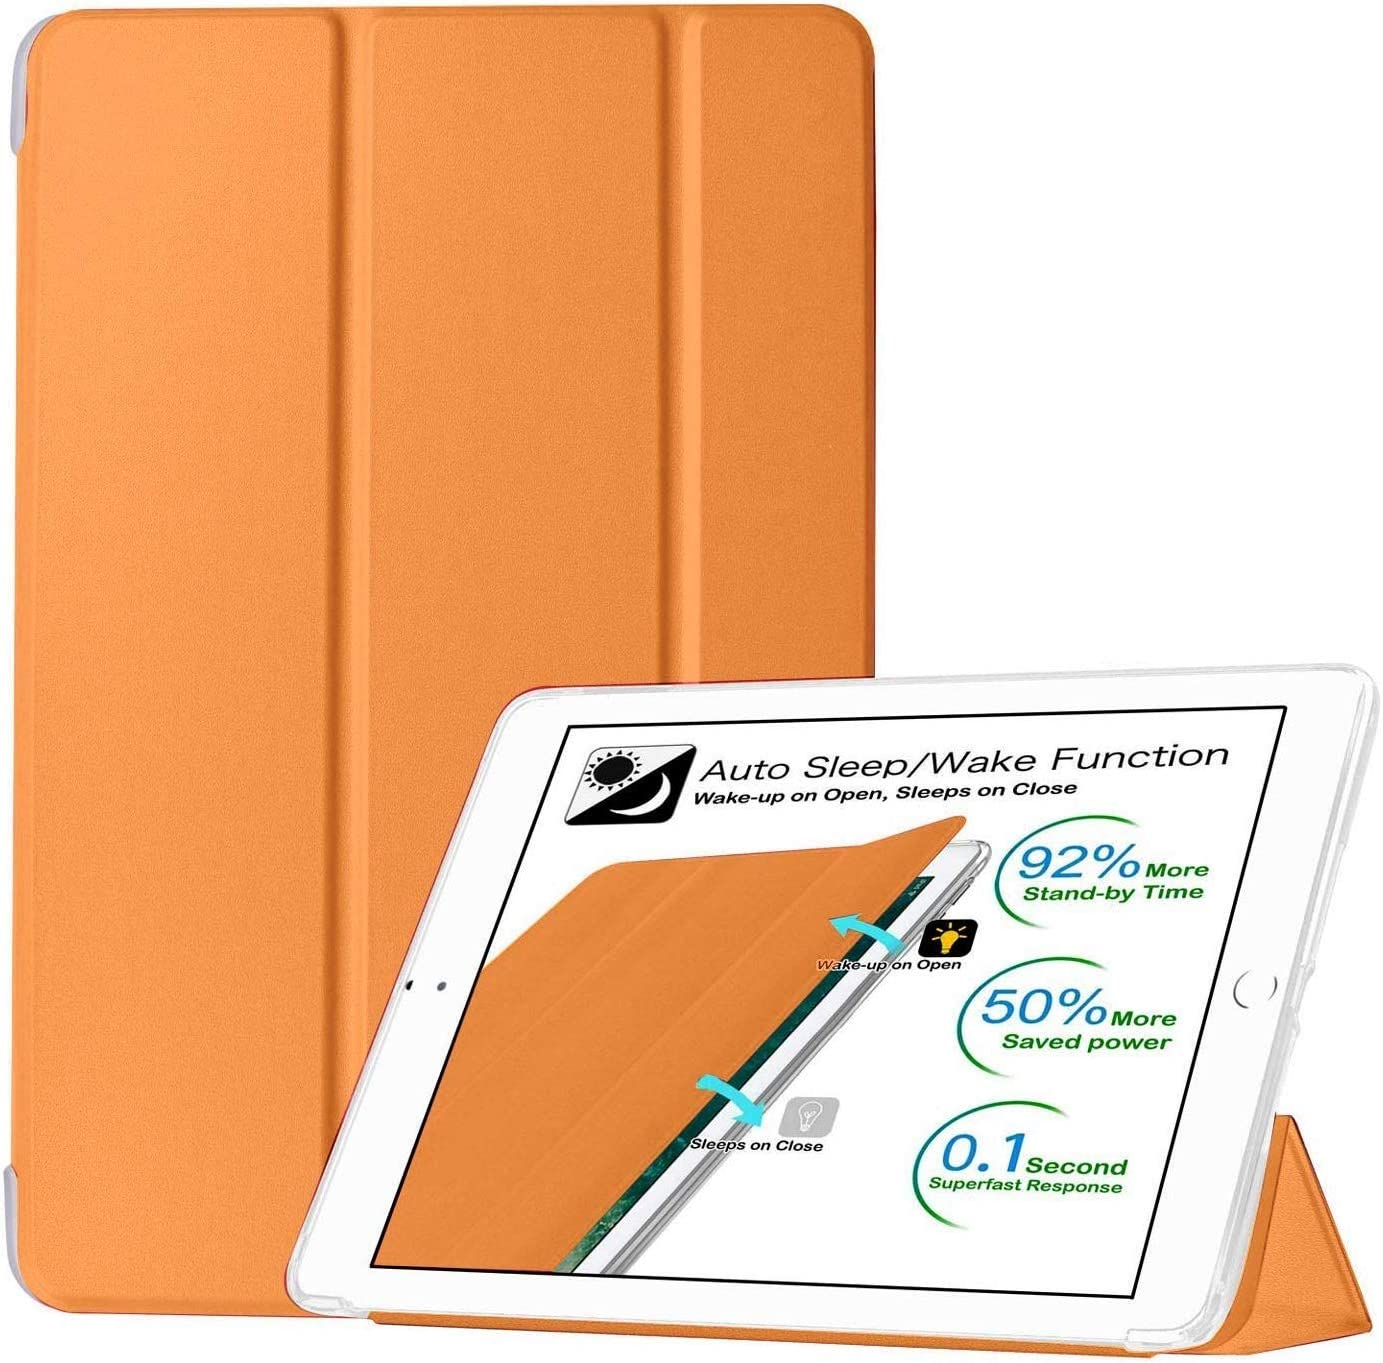 DuraSafe Cases for iPad PRO 9.7 Inch 2016 [ A1673 A1674 A1675 ] Smart Cover with Soft Silicone Back, Auto Sleep/Wake - Orange